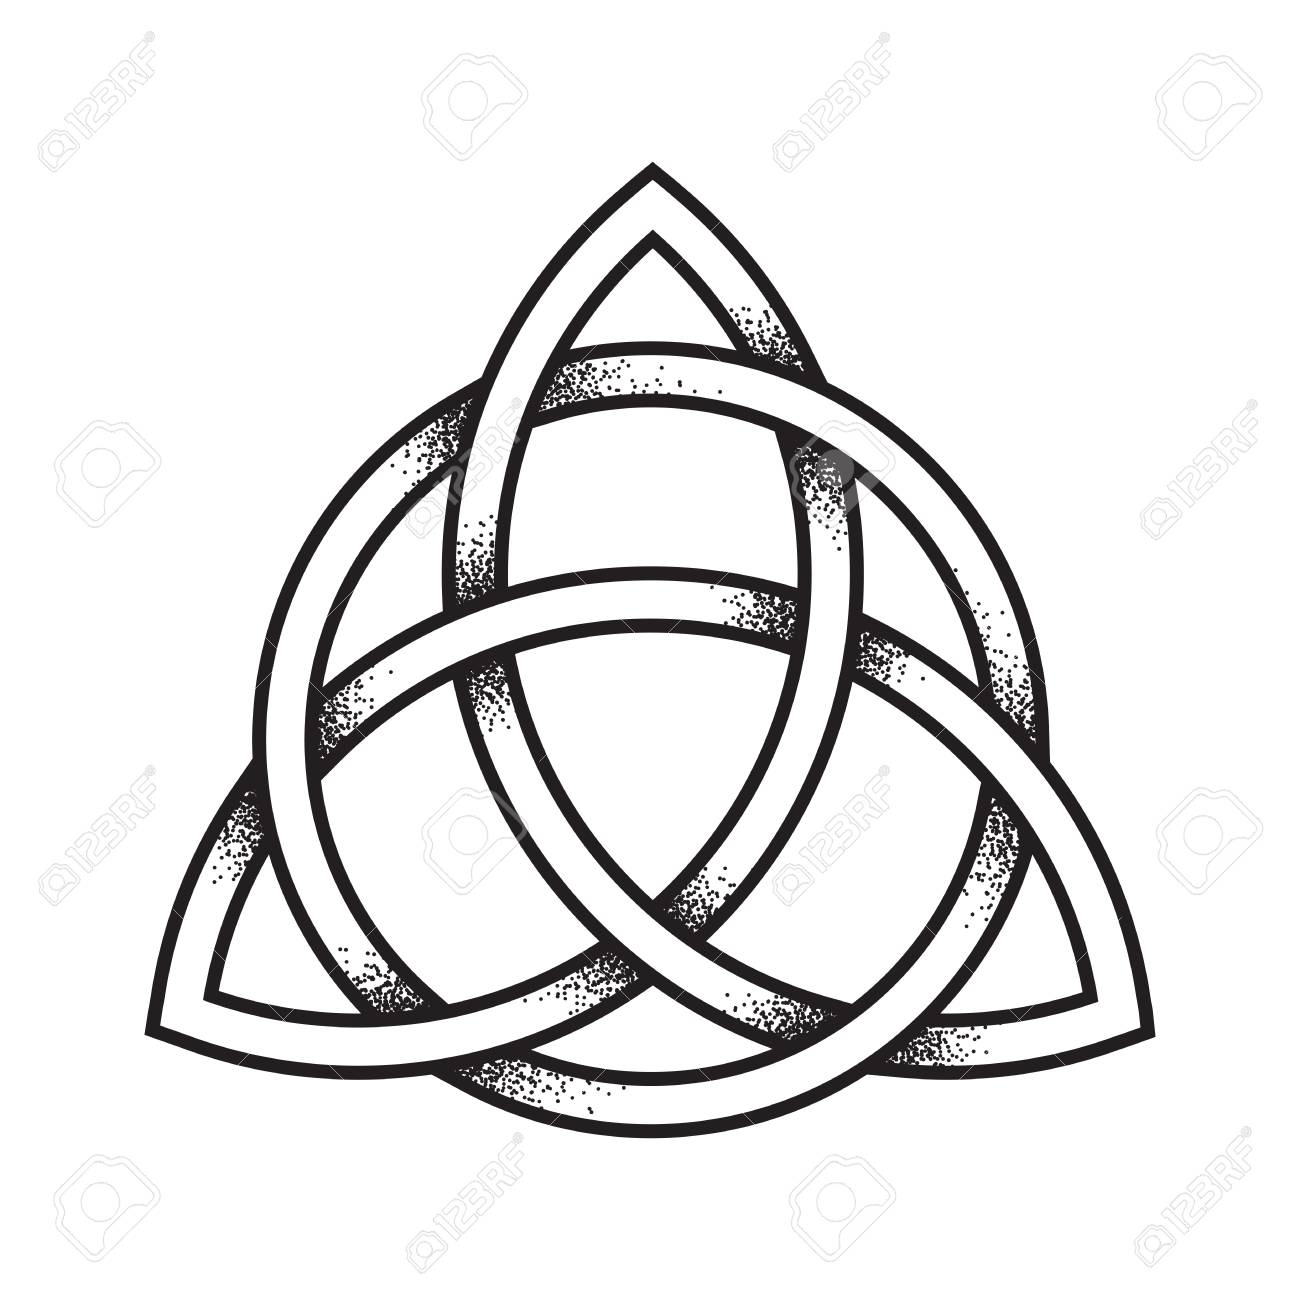 Triquetra Or Trinity Knot. Hand Drawn Dot Work Ancient Pagan ...